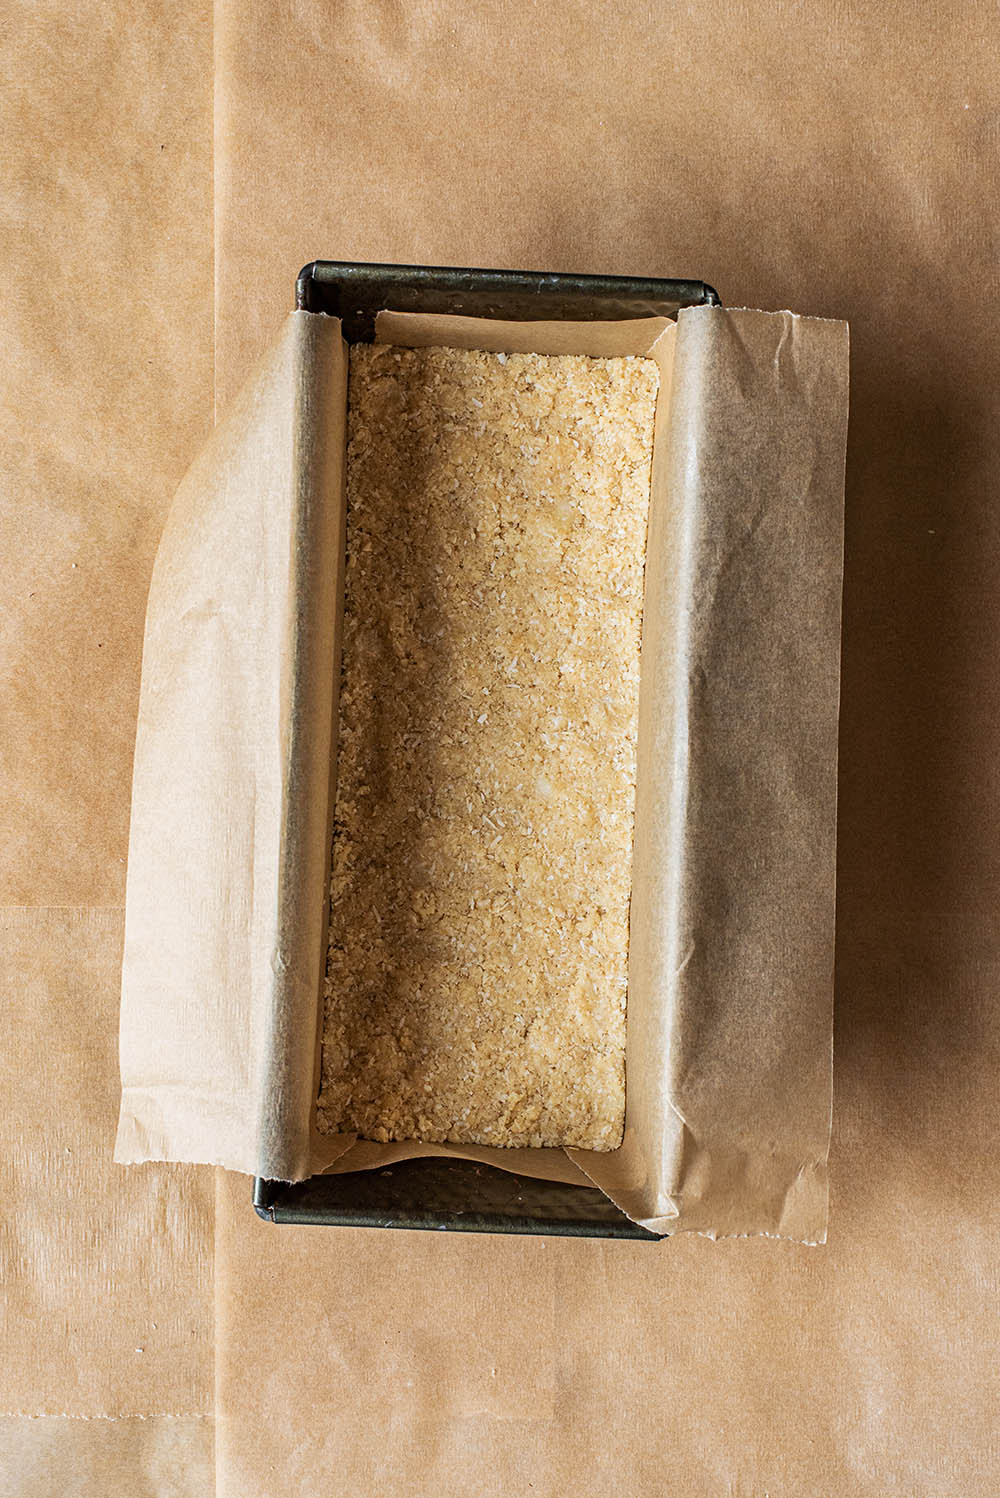 Base layer pressed into a lined loaf tin.